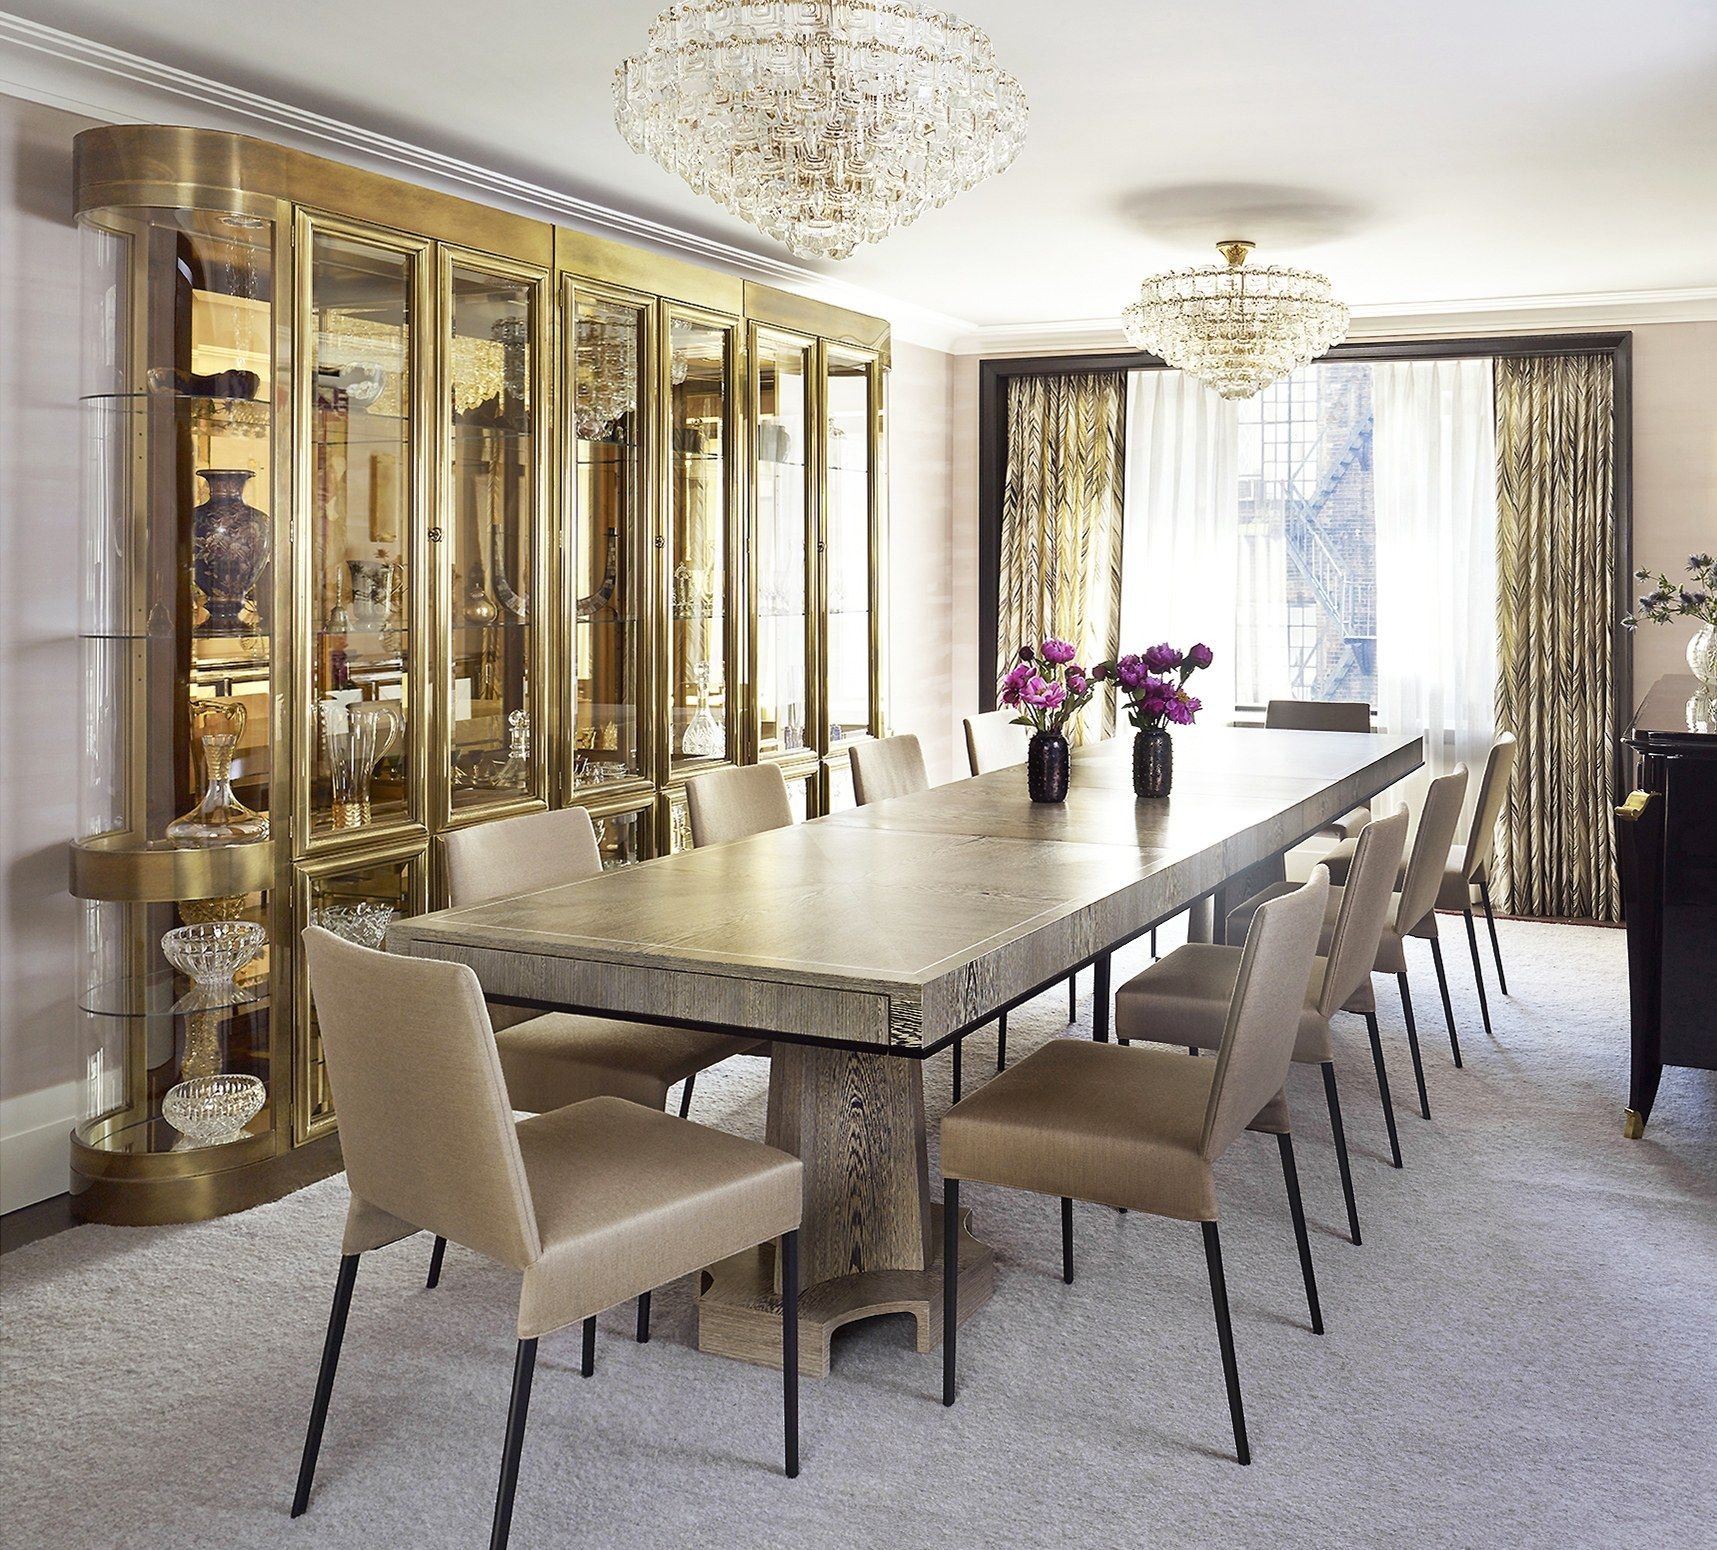 23 Dining Room Chandelier Designs Decorating Ideas: An Elegant Postwar Apartment With Character